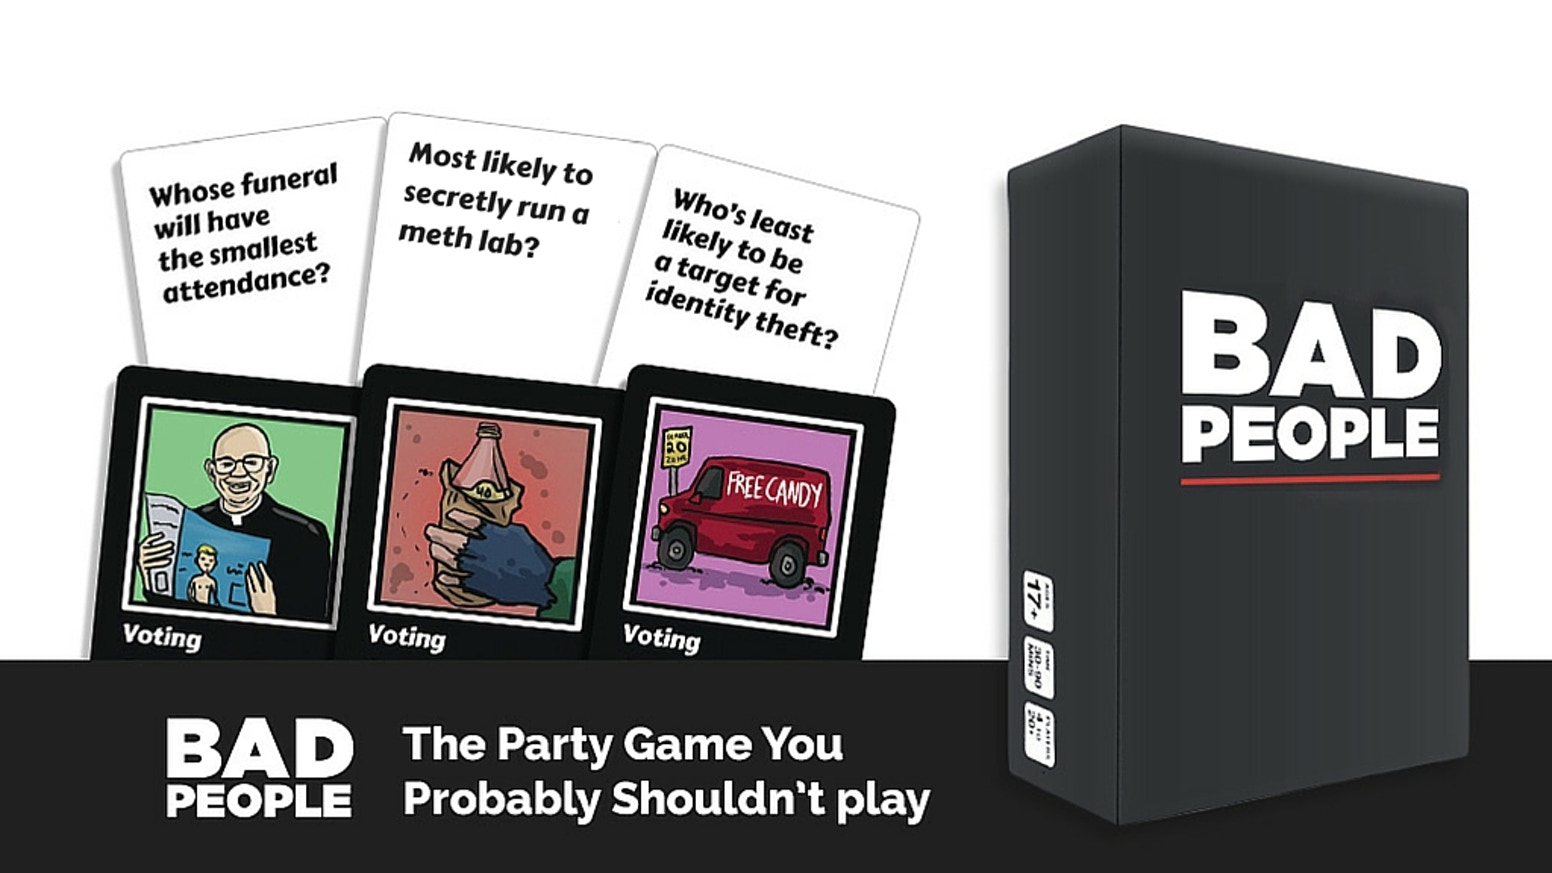 Bad People - The Party Game You Probably Shouldn't Play by Mike Lancaster —Kickstarter